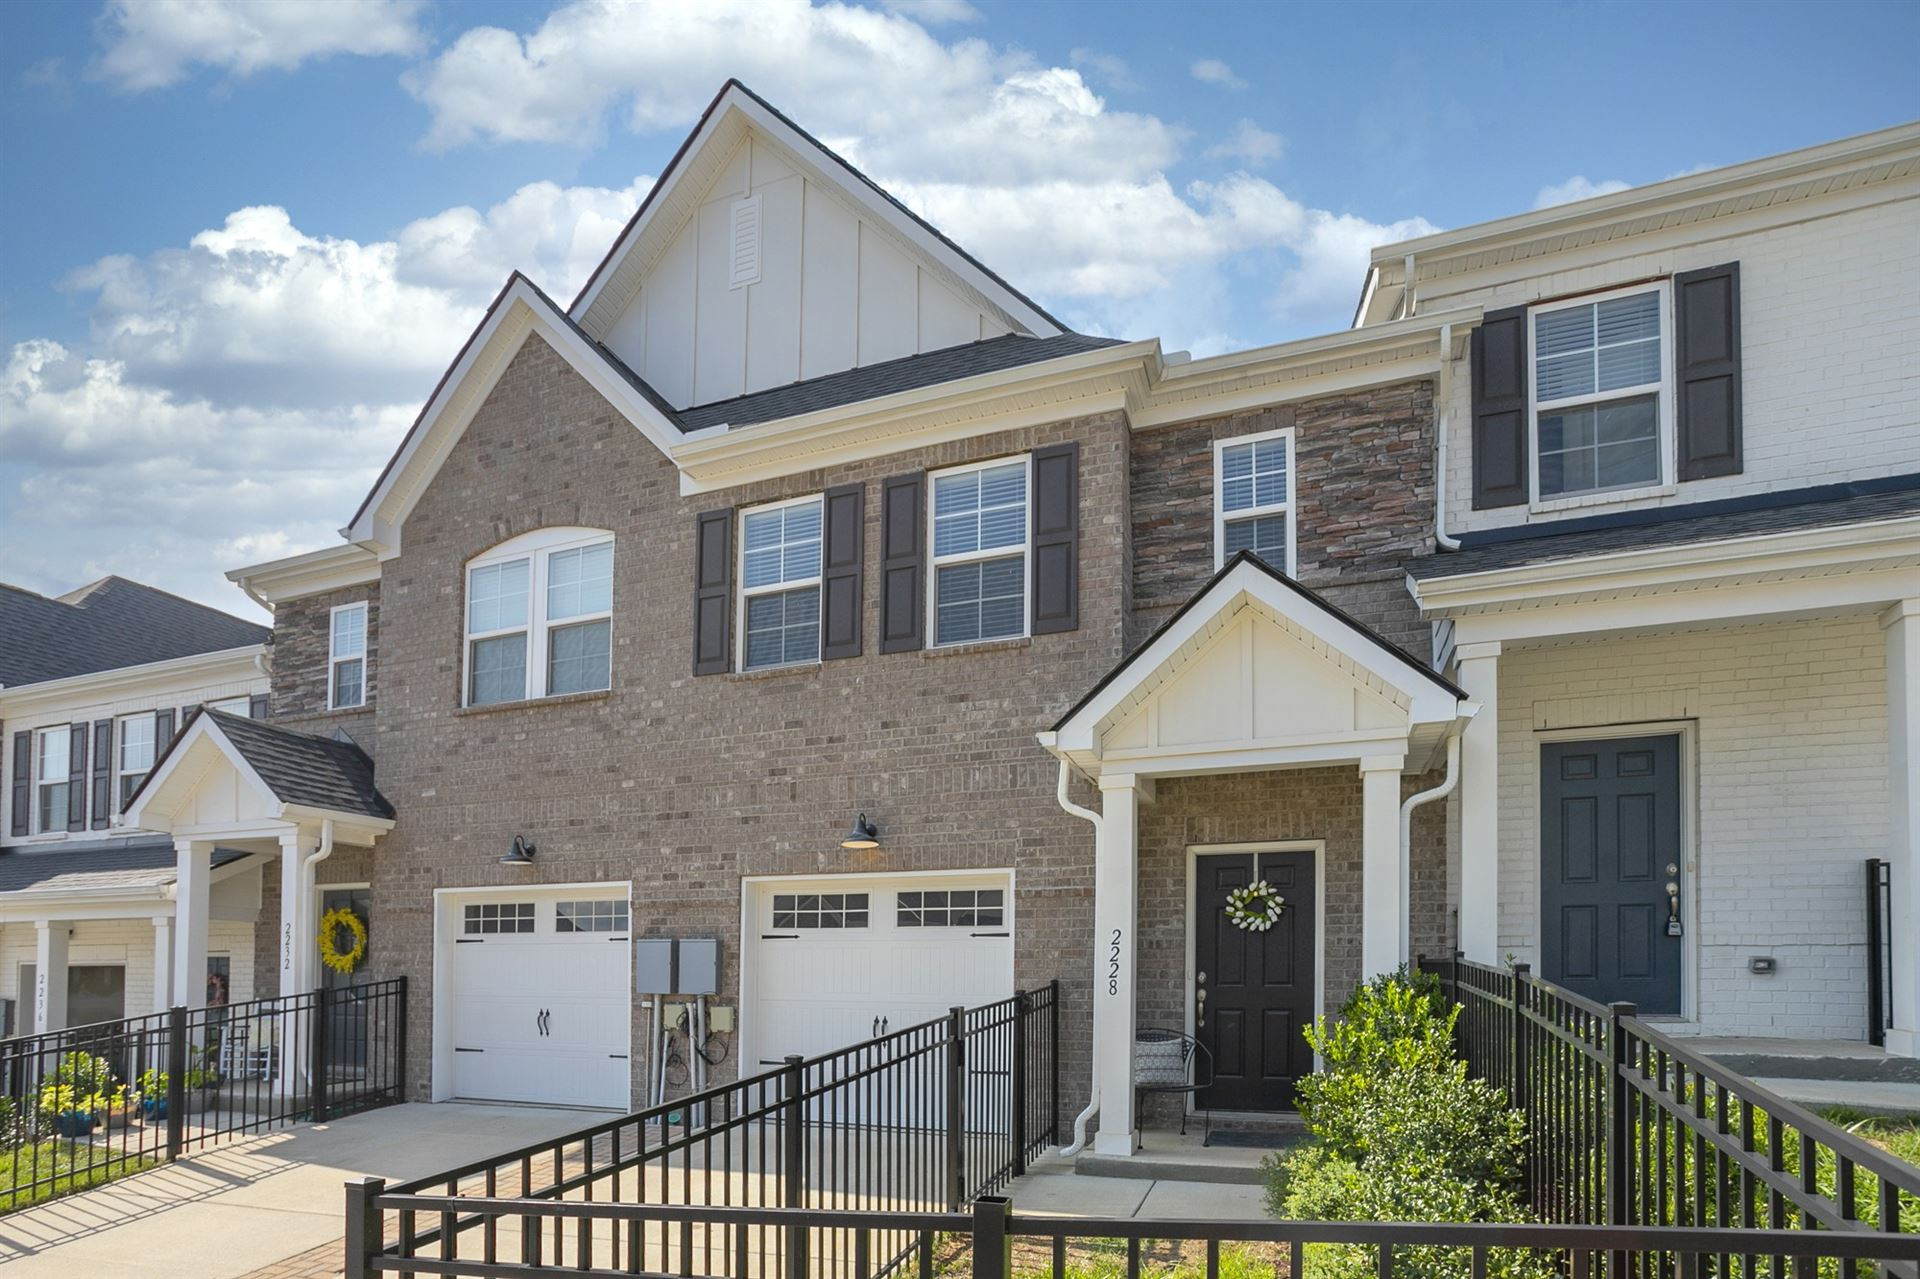 2228 Belle Creek Way, Nashville, TN 37221 - MLS#: 2172098